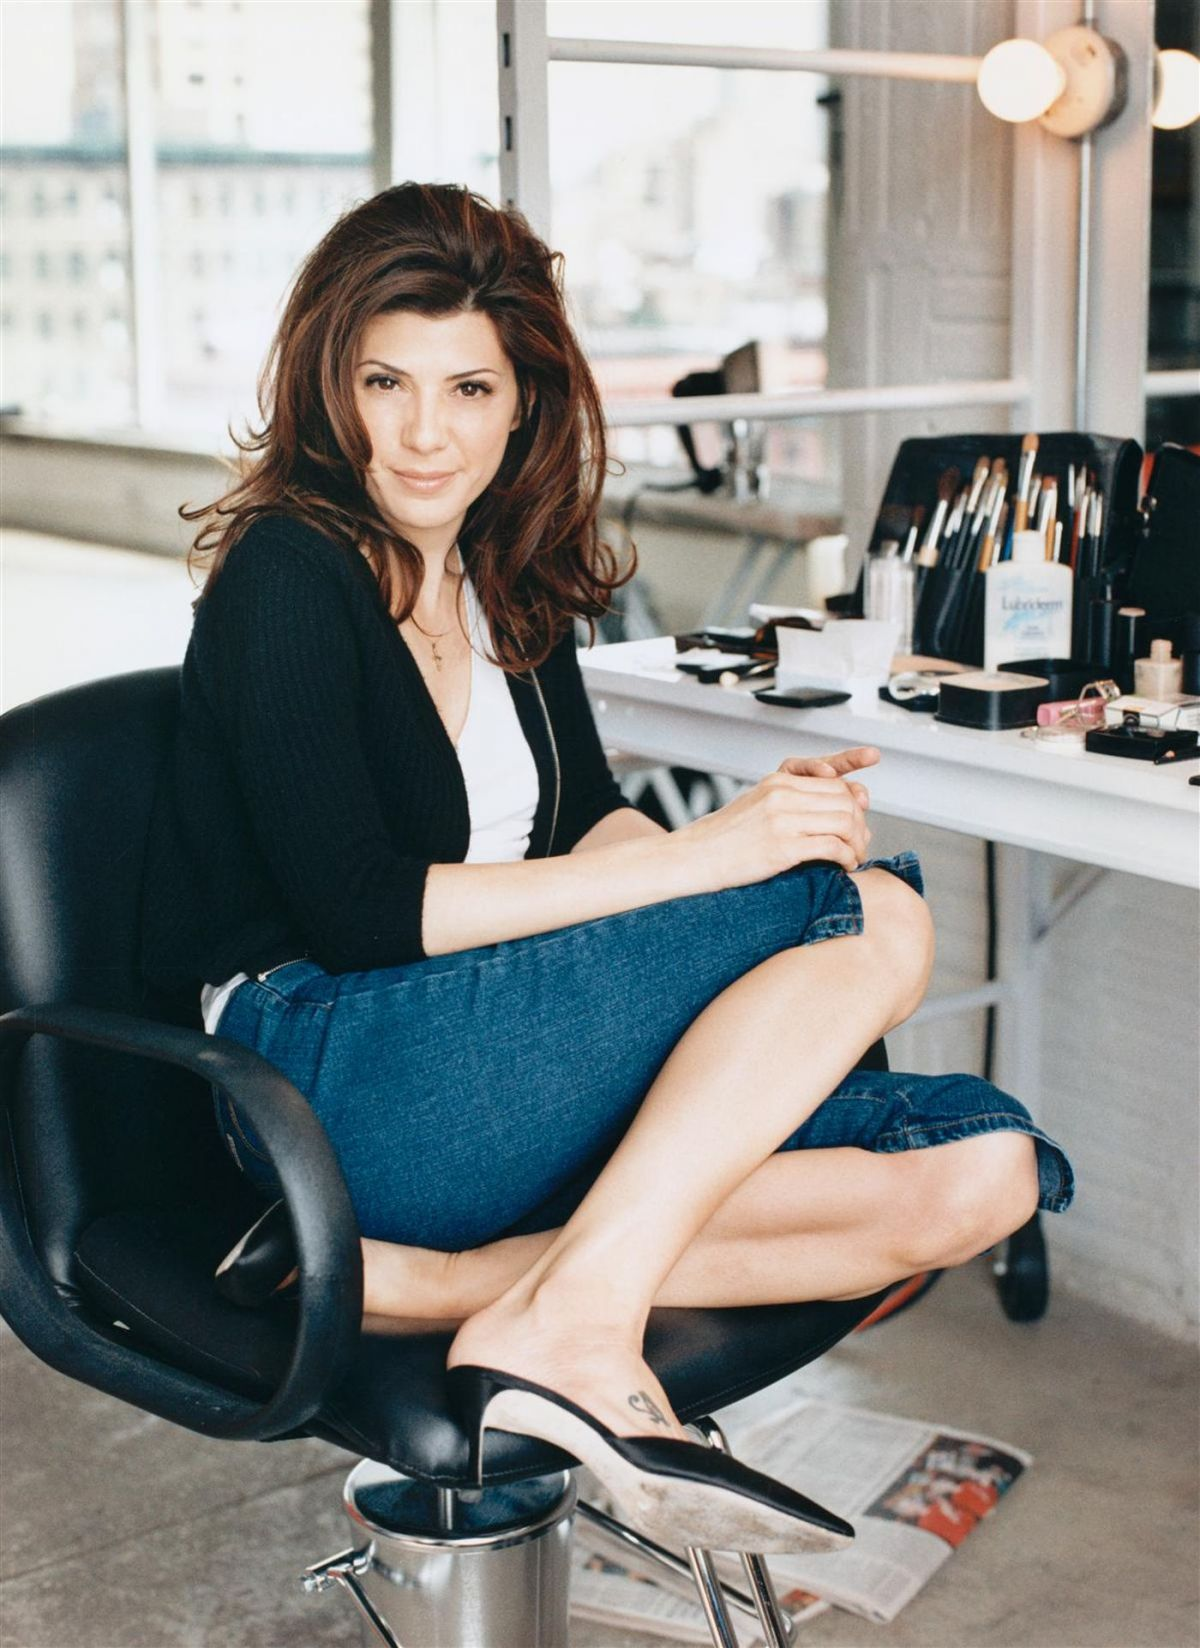 Feet Marisa Tomei nudes (86 foto and video), Tits, Leaked, Boobs, braless 2015